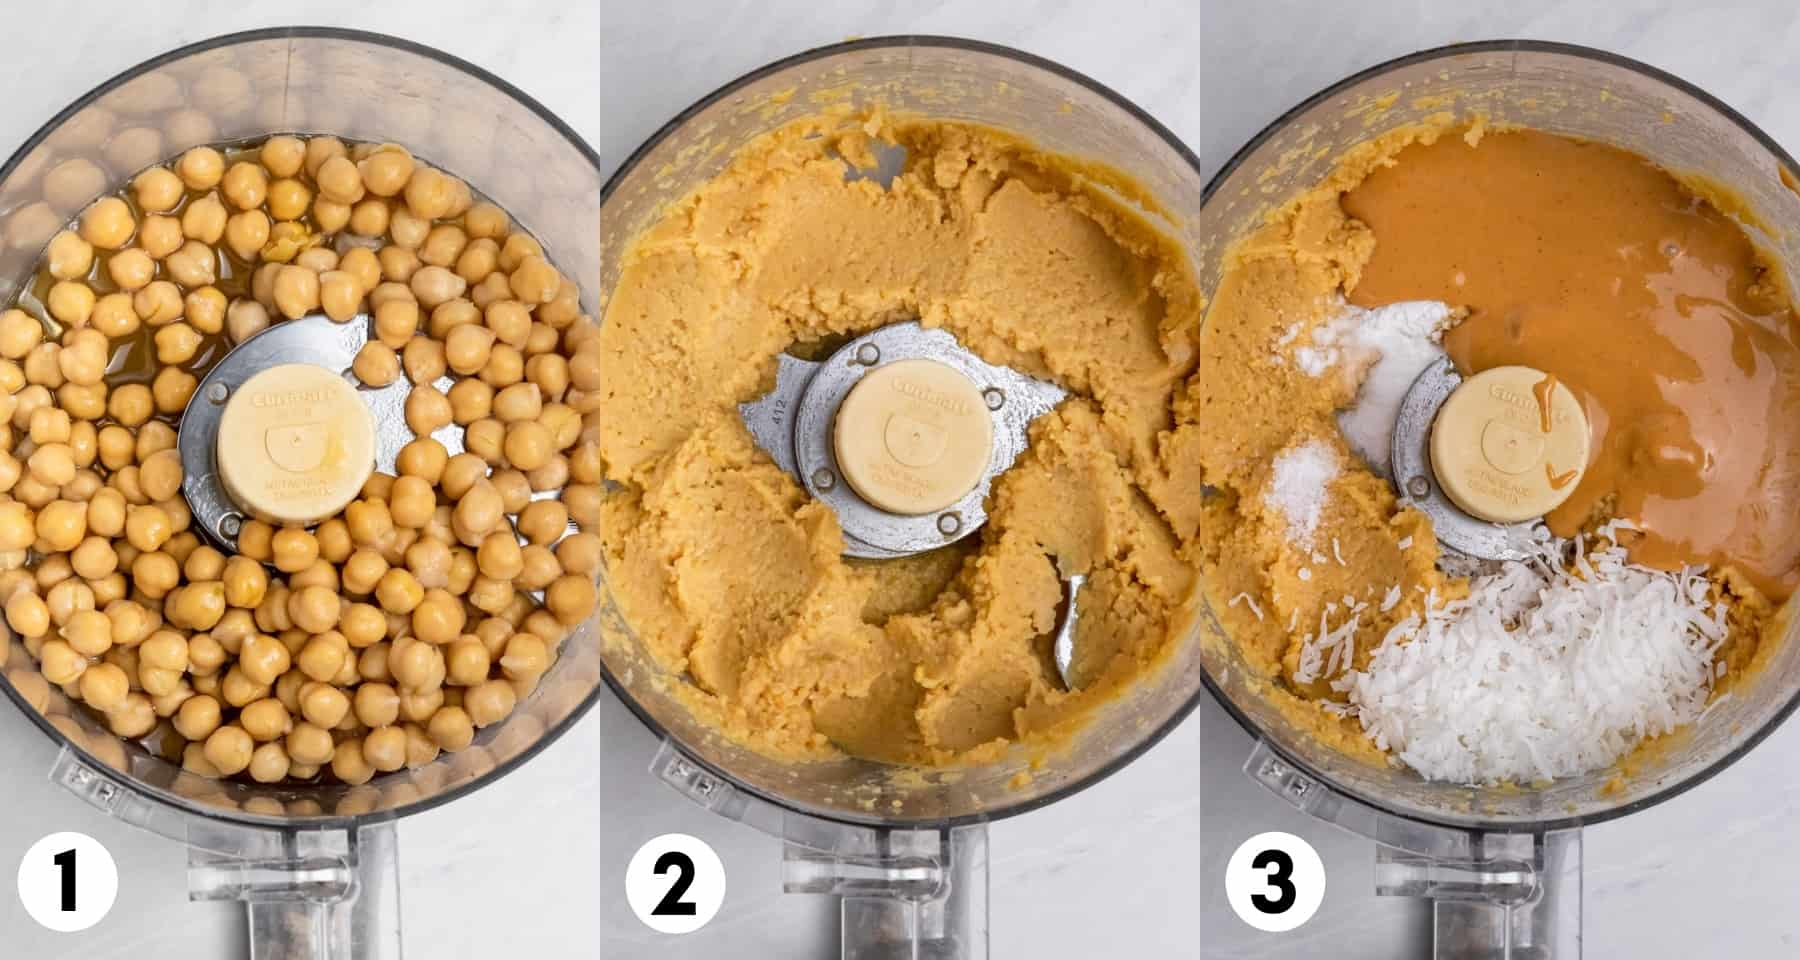 Chickpeas in food processor and then pureed.